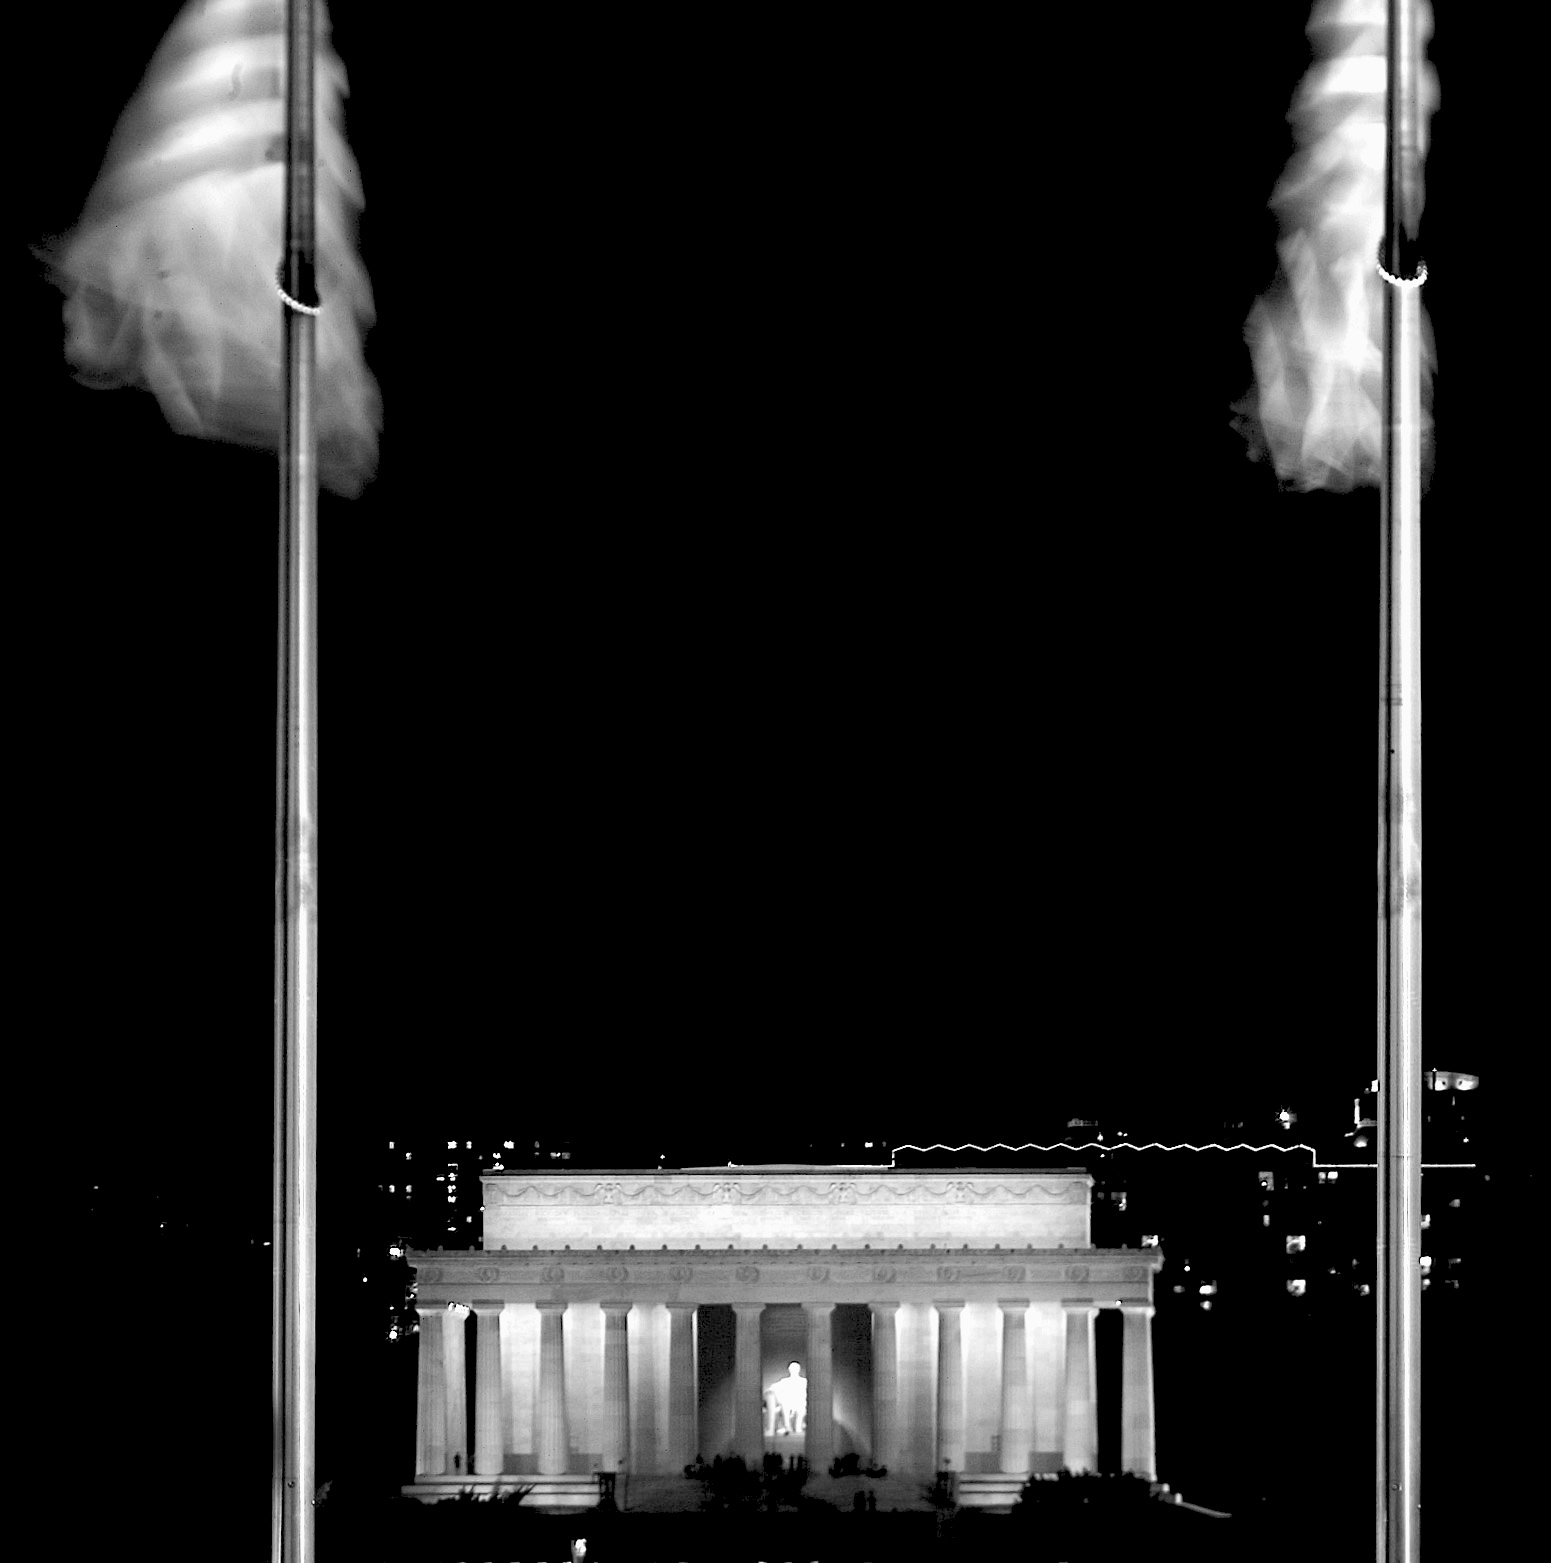 The Lincoln Memorial, as seen from the Washington Monument during a winter night. - Alex Lorman